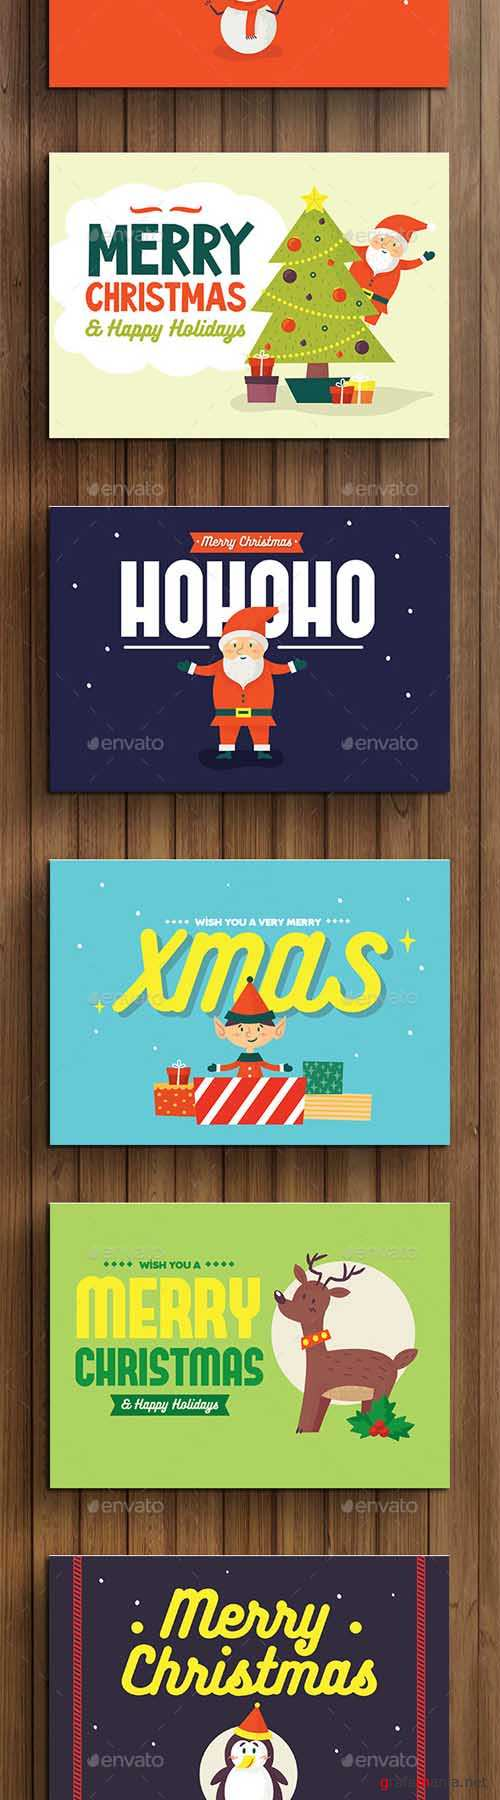 Set of Christmas Card / Background 13541524